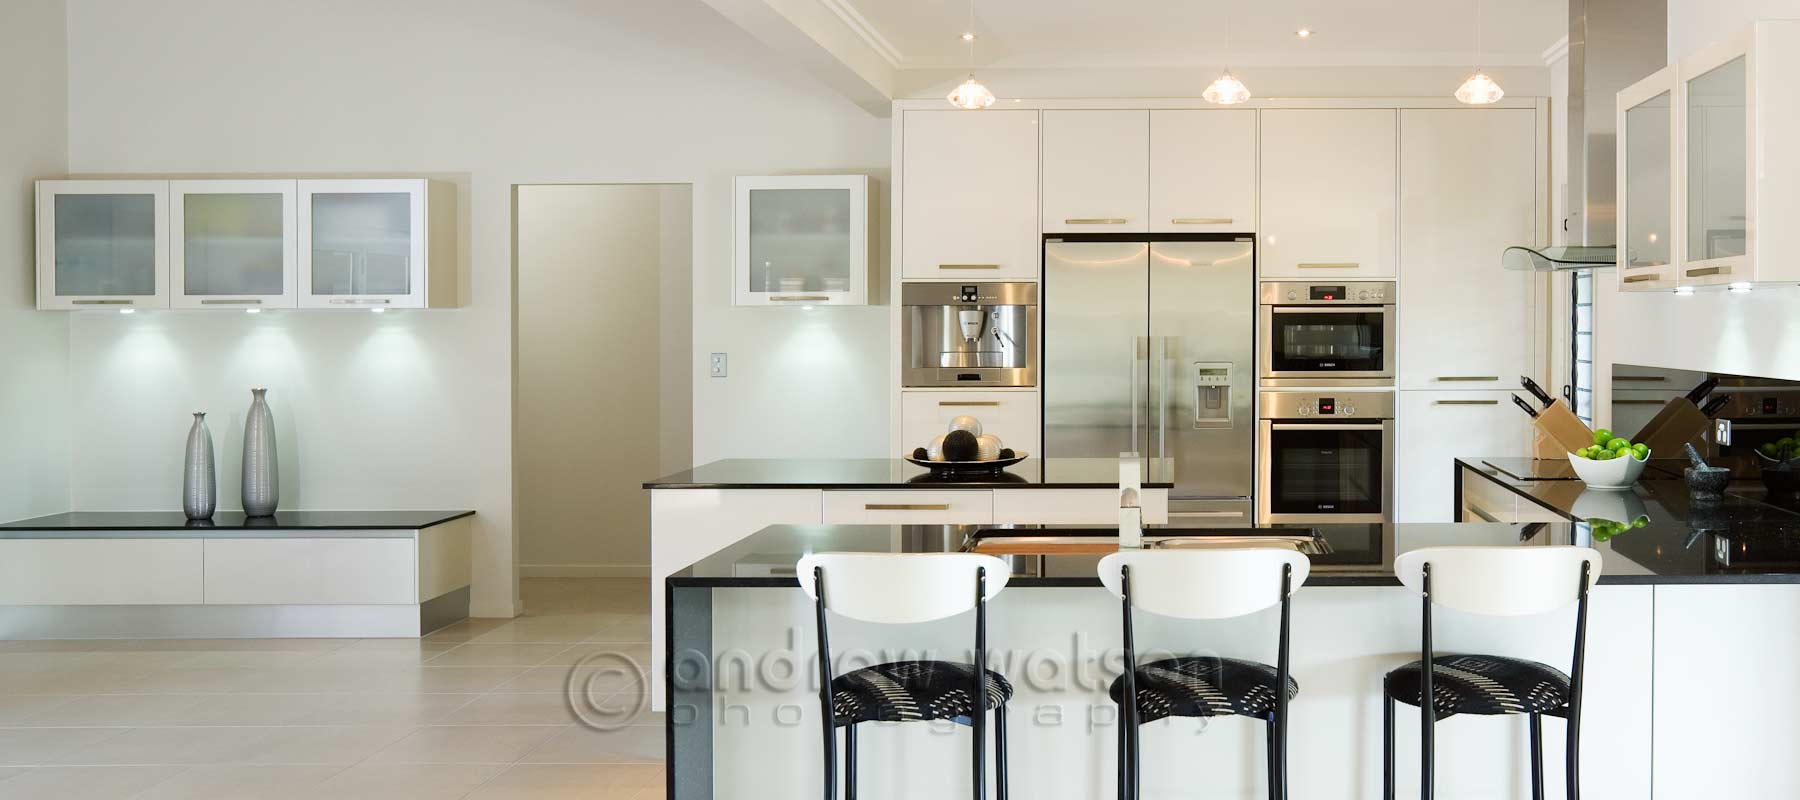 Interior photography   New kitchen installation  Lifestyle  Residential. Cairns Architecture   Interiors Photographer   Image of new